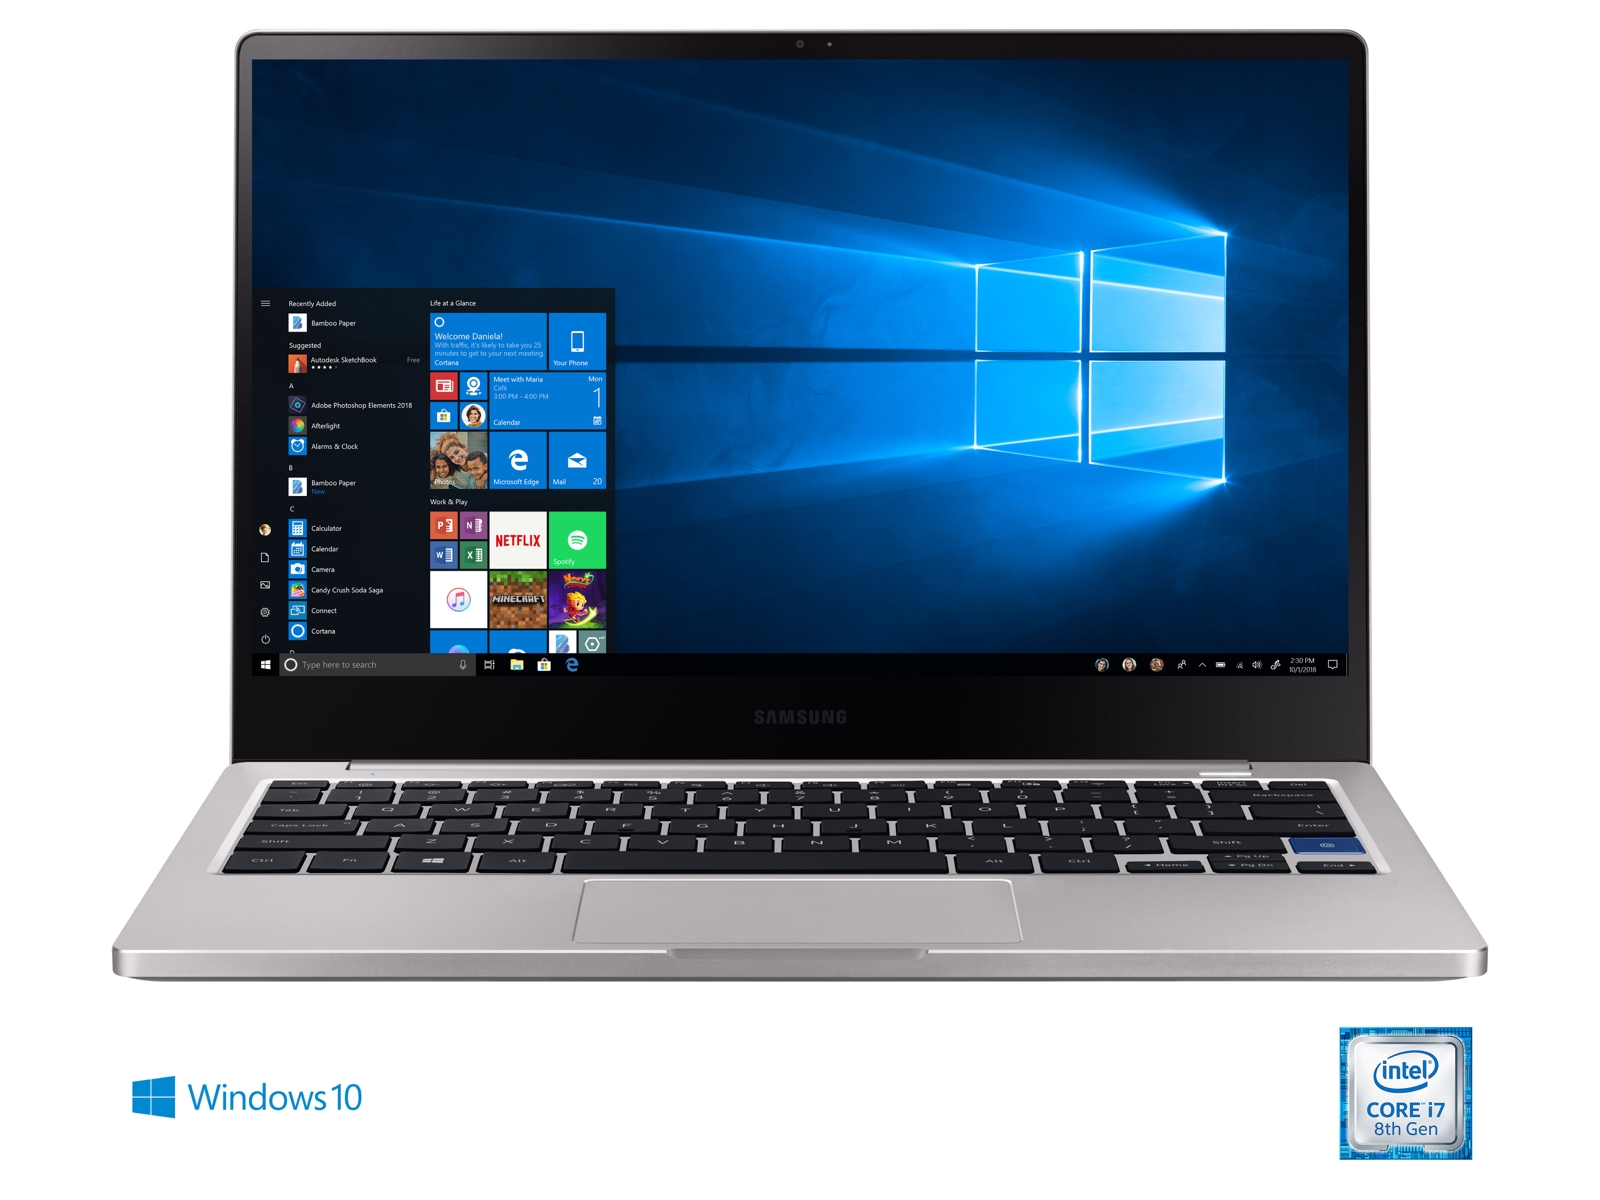 Notebook 7 13.3 (Core i7/16GB)